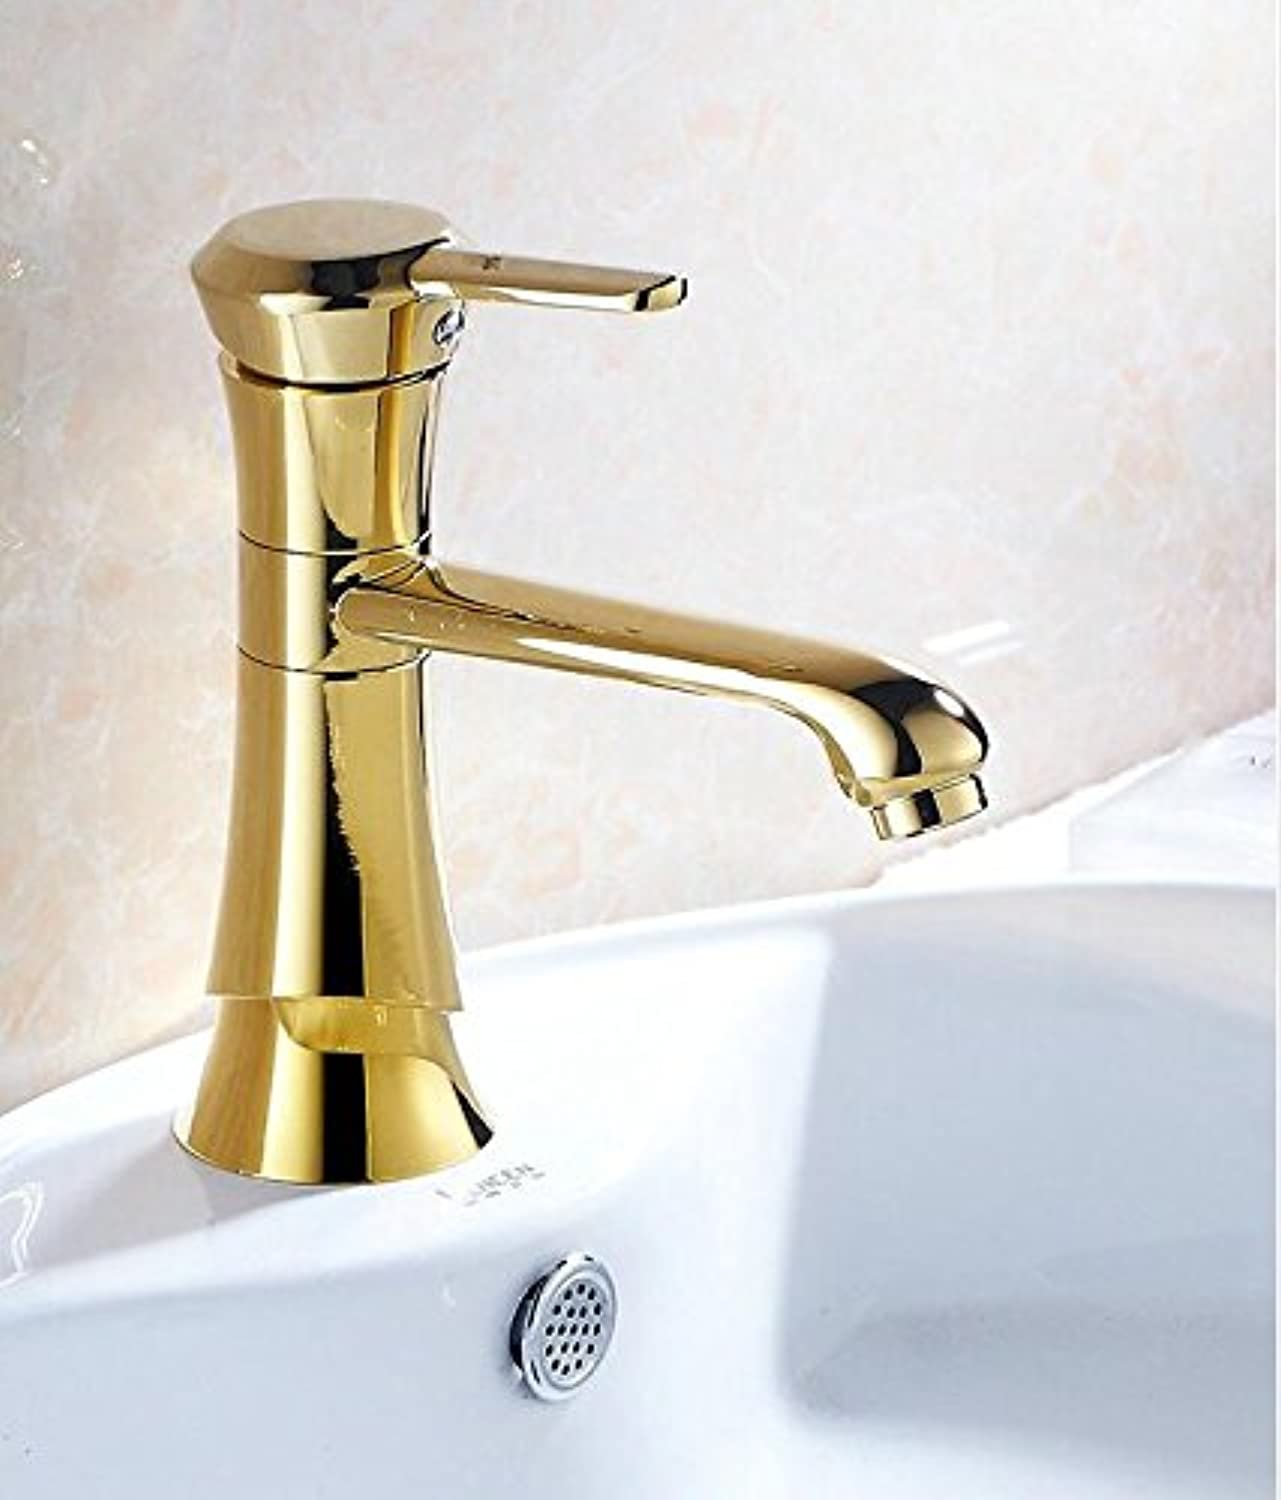 Makej New golden Finish Brass Single Hole Single Handle Hot and Cold Faucet Mixer Tap